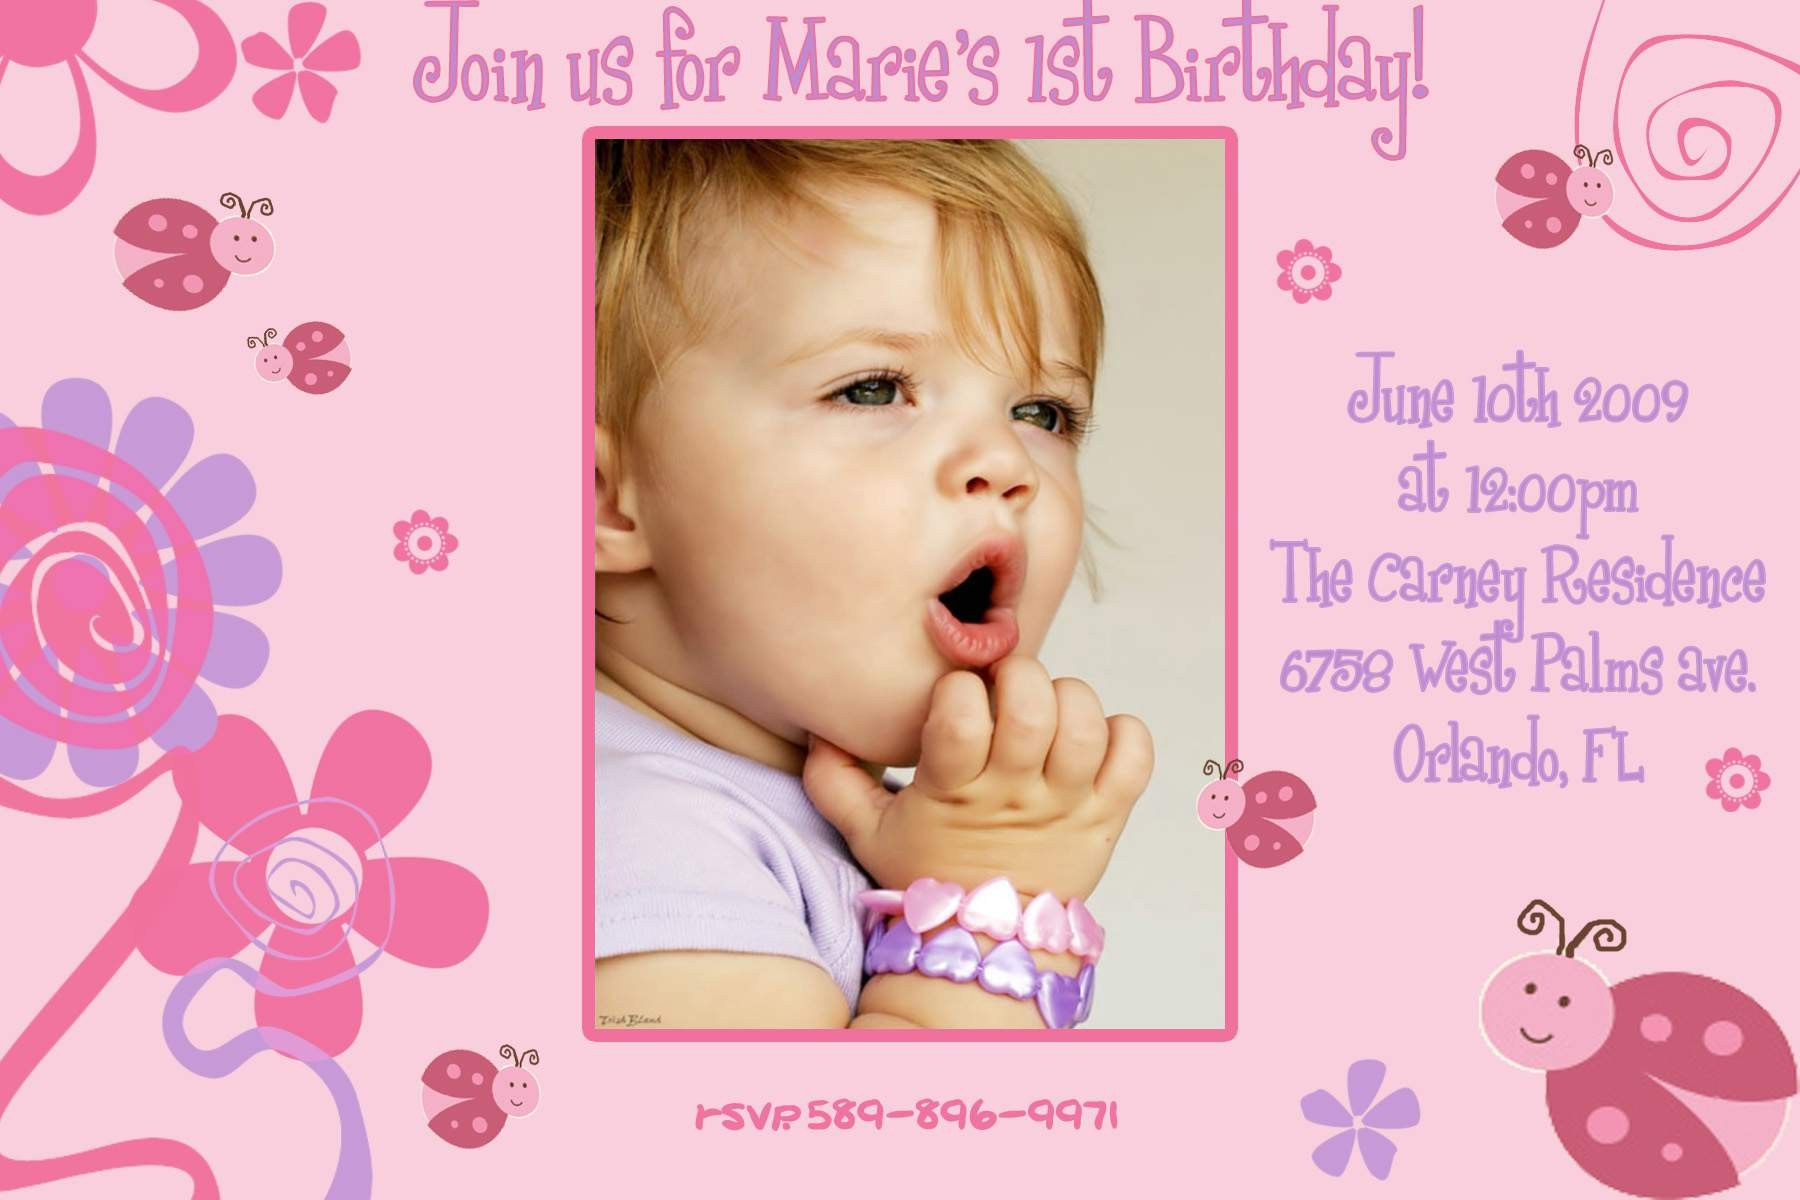 invitation letter for 1st birthday party ; sample-invitation-letter-for-first-birthday-party-new-first-birthday-invitation-cards-designs-free-1st-birthday-of-sample-invitation-letter-for-first-birthday-party